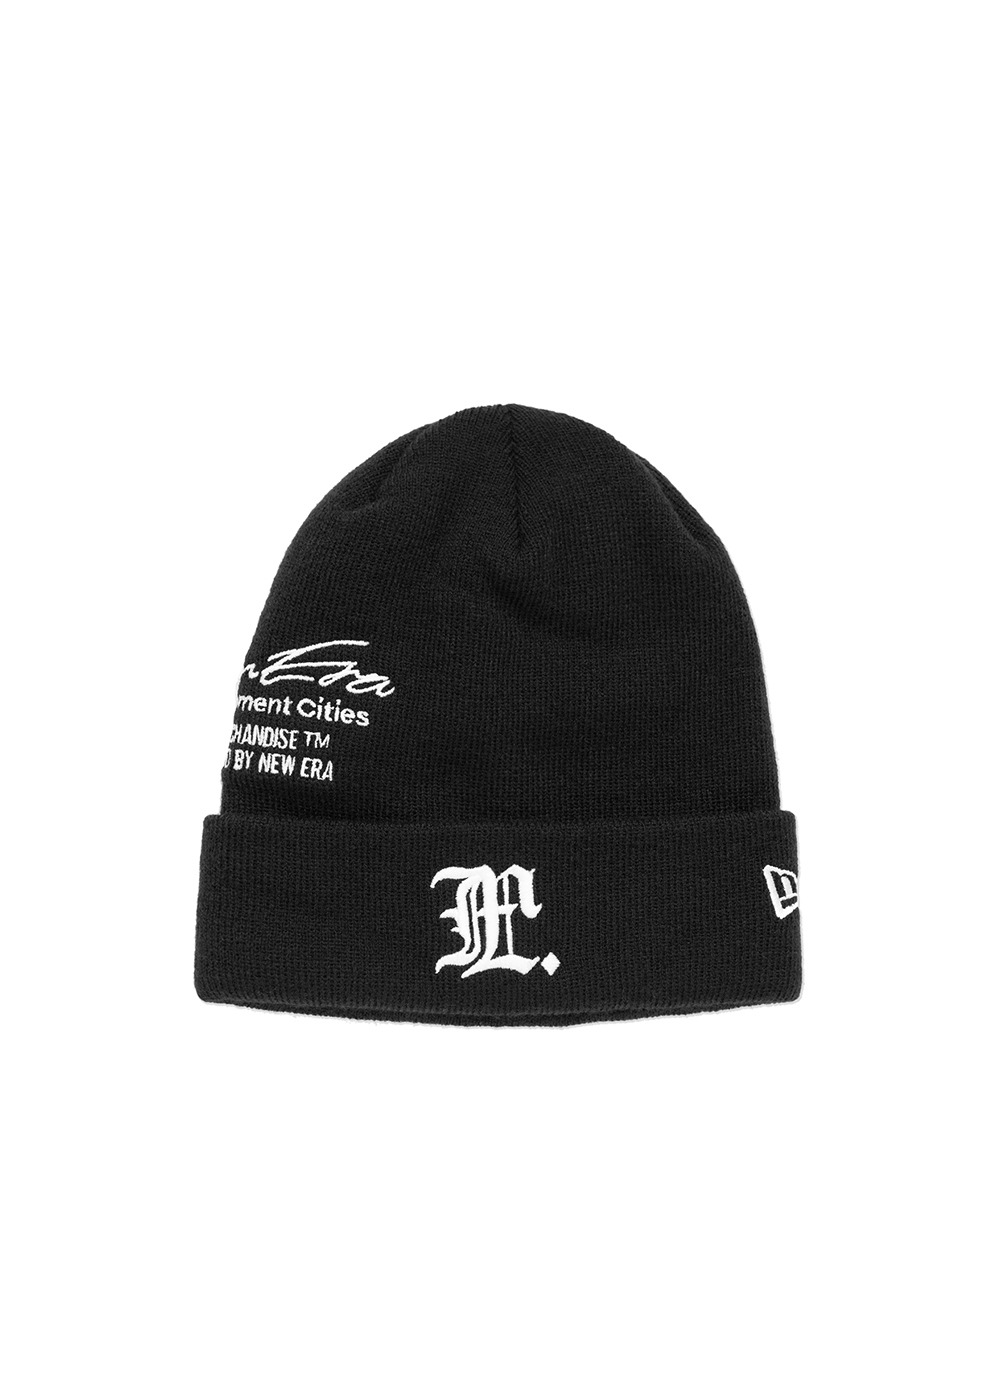 LMC X NEW ERA GOTHIC KNIT BASIC CUFF black